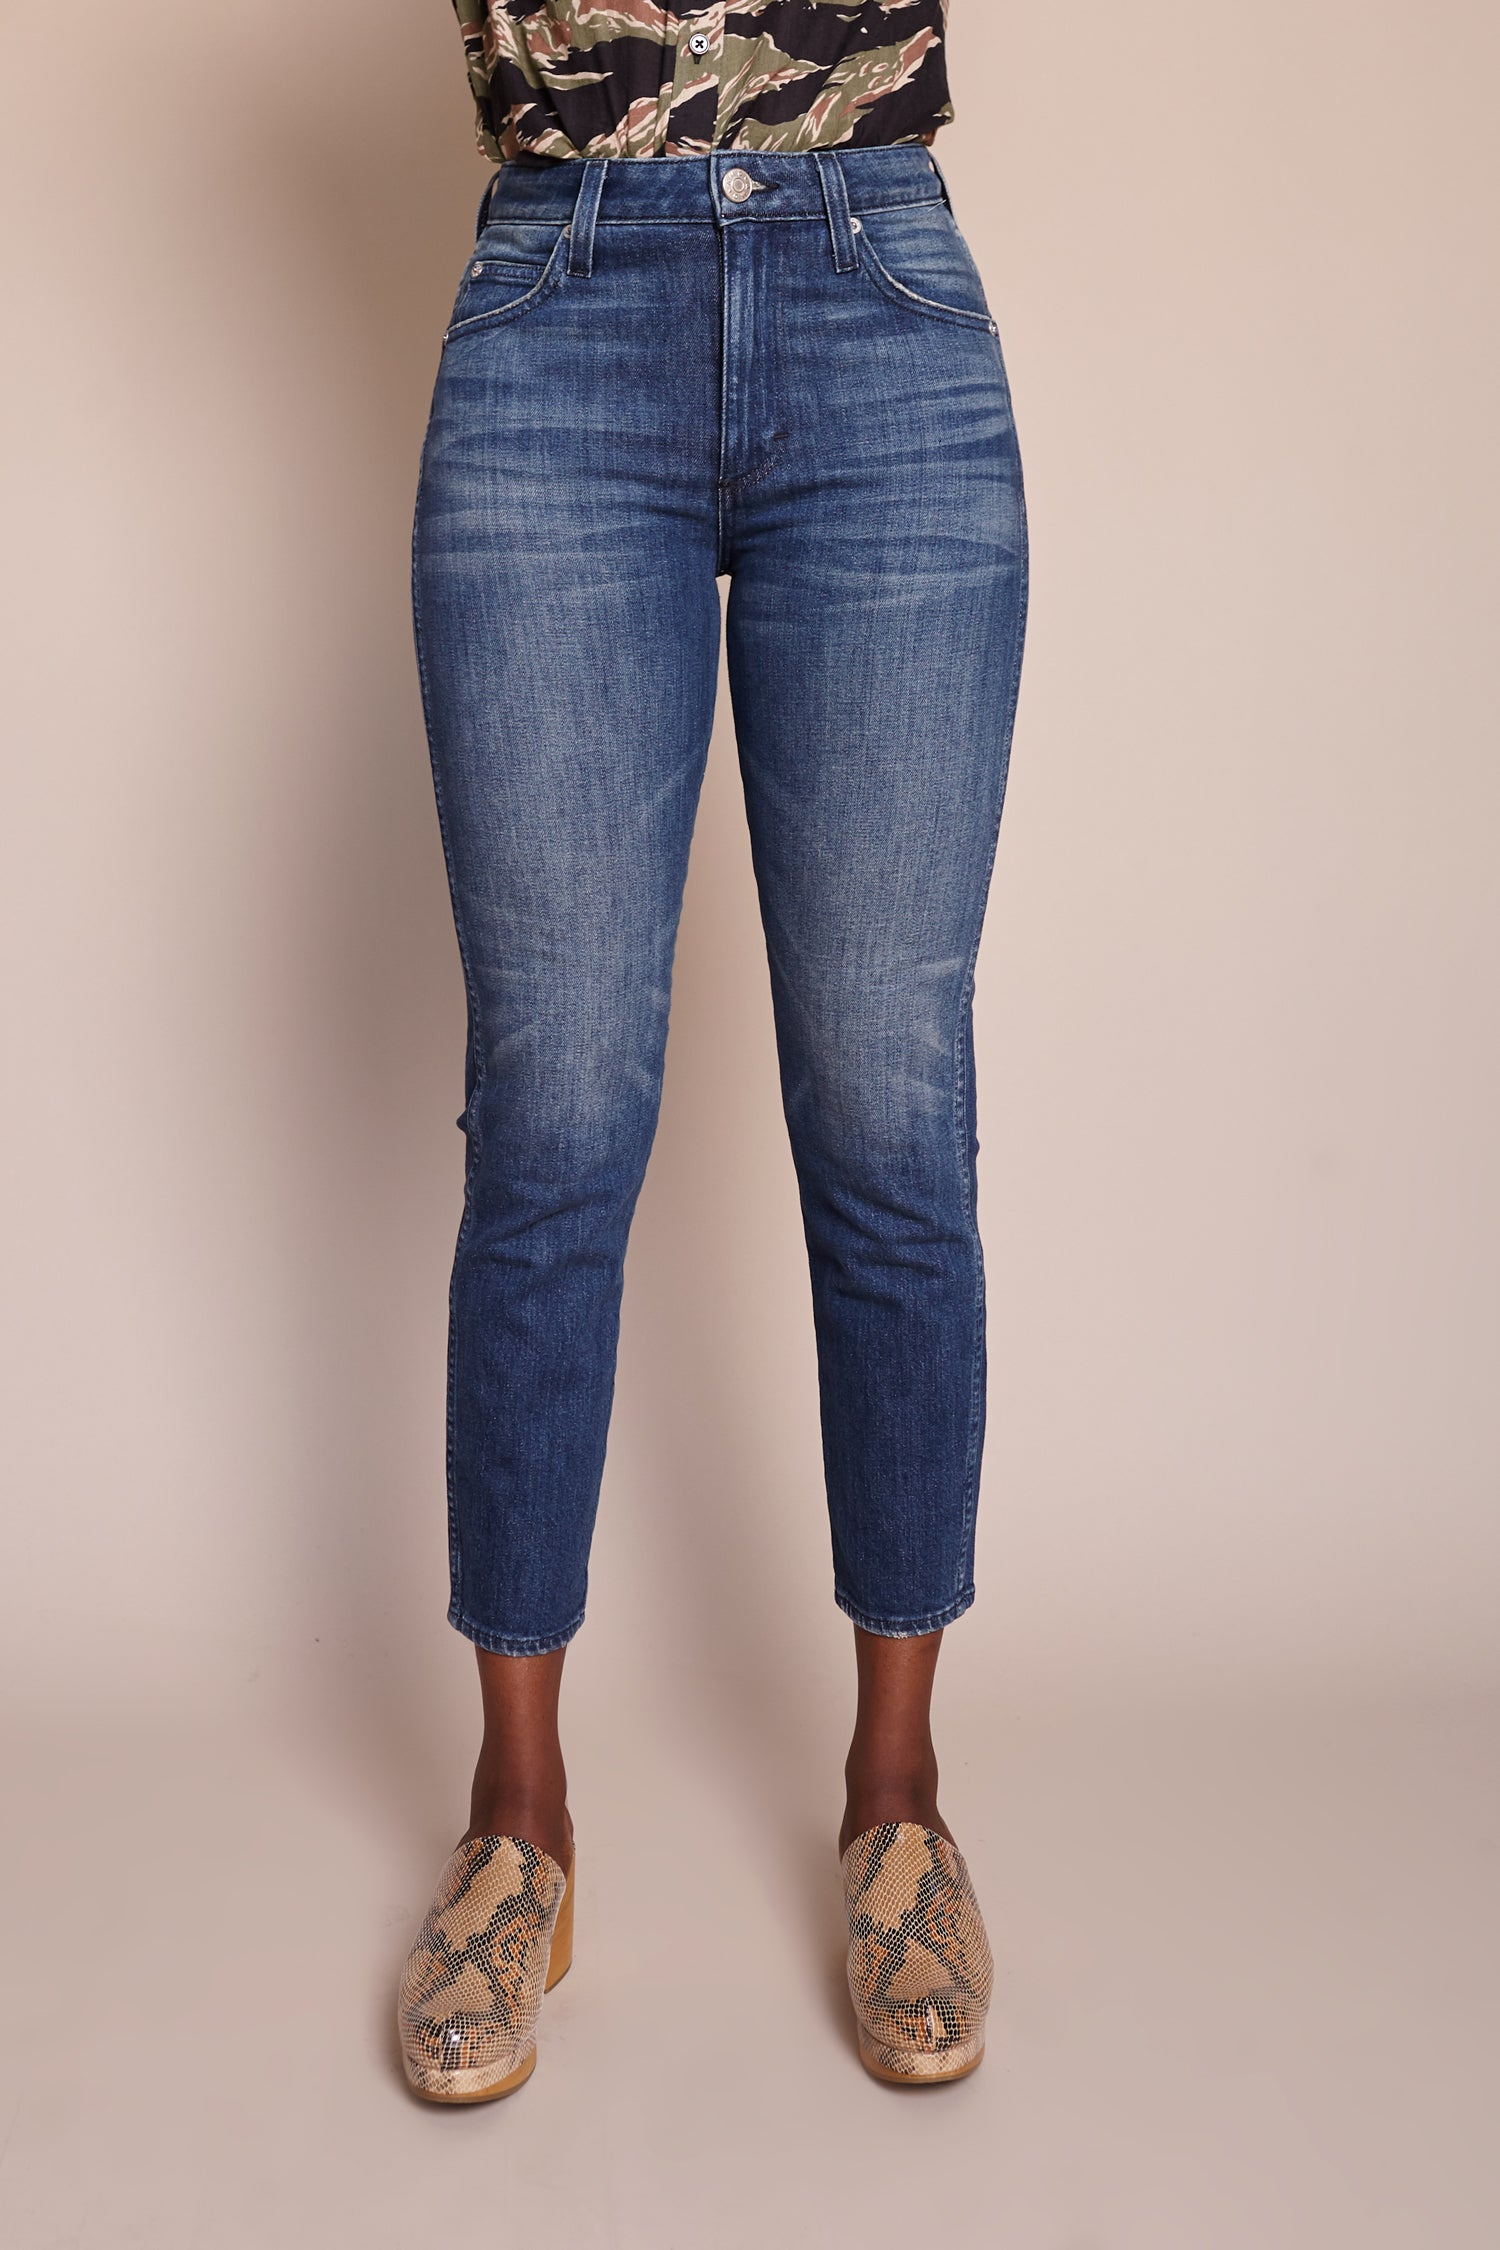 Stix Crop Jean in Girl's Night Out